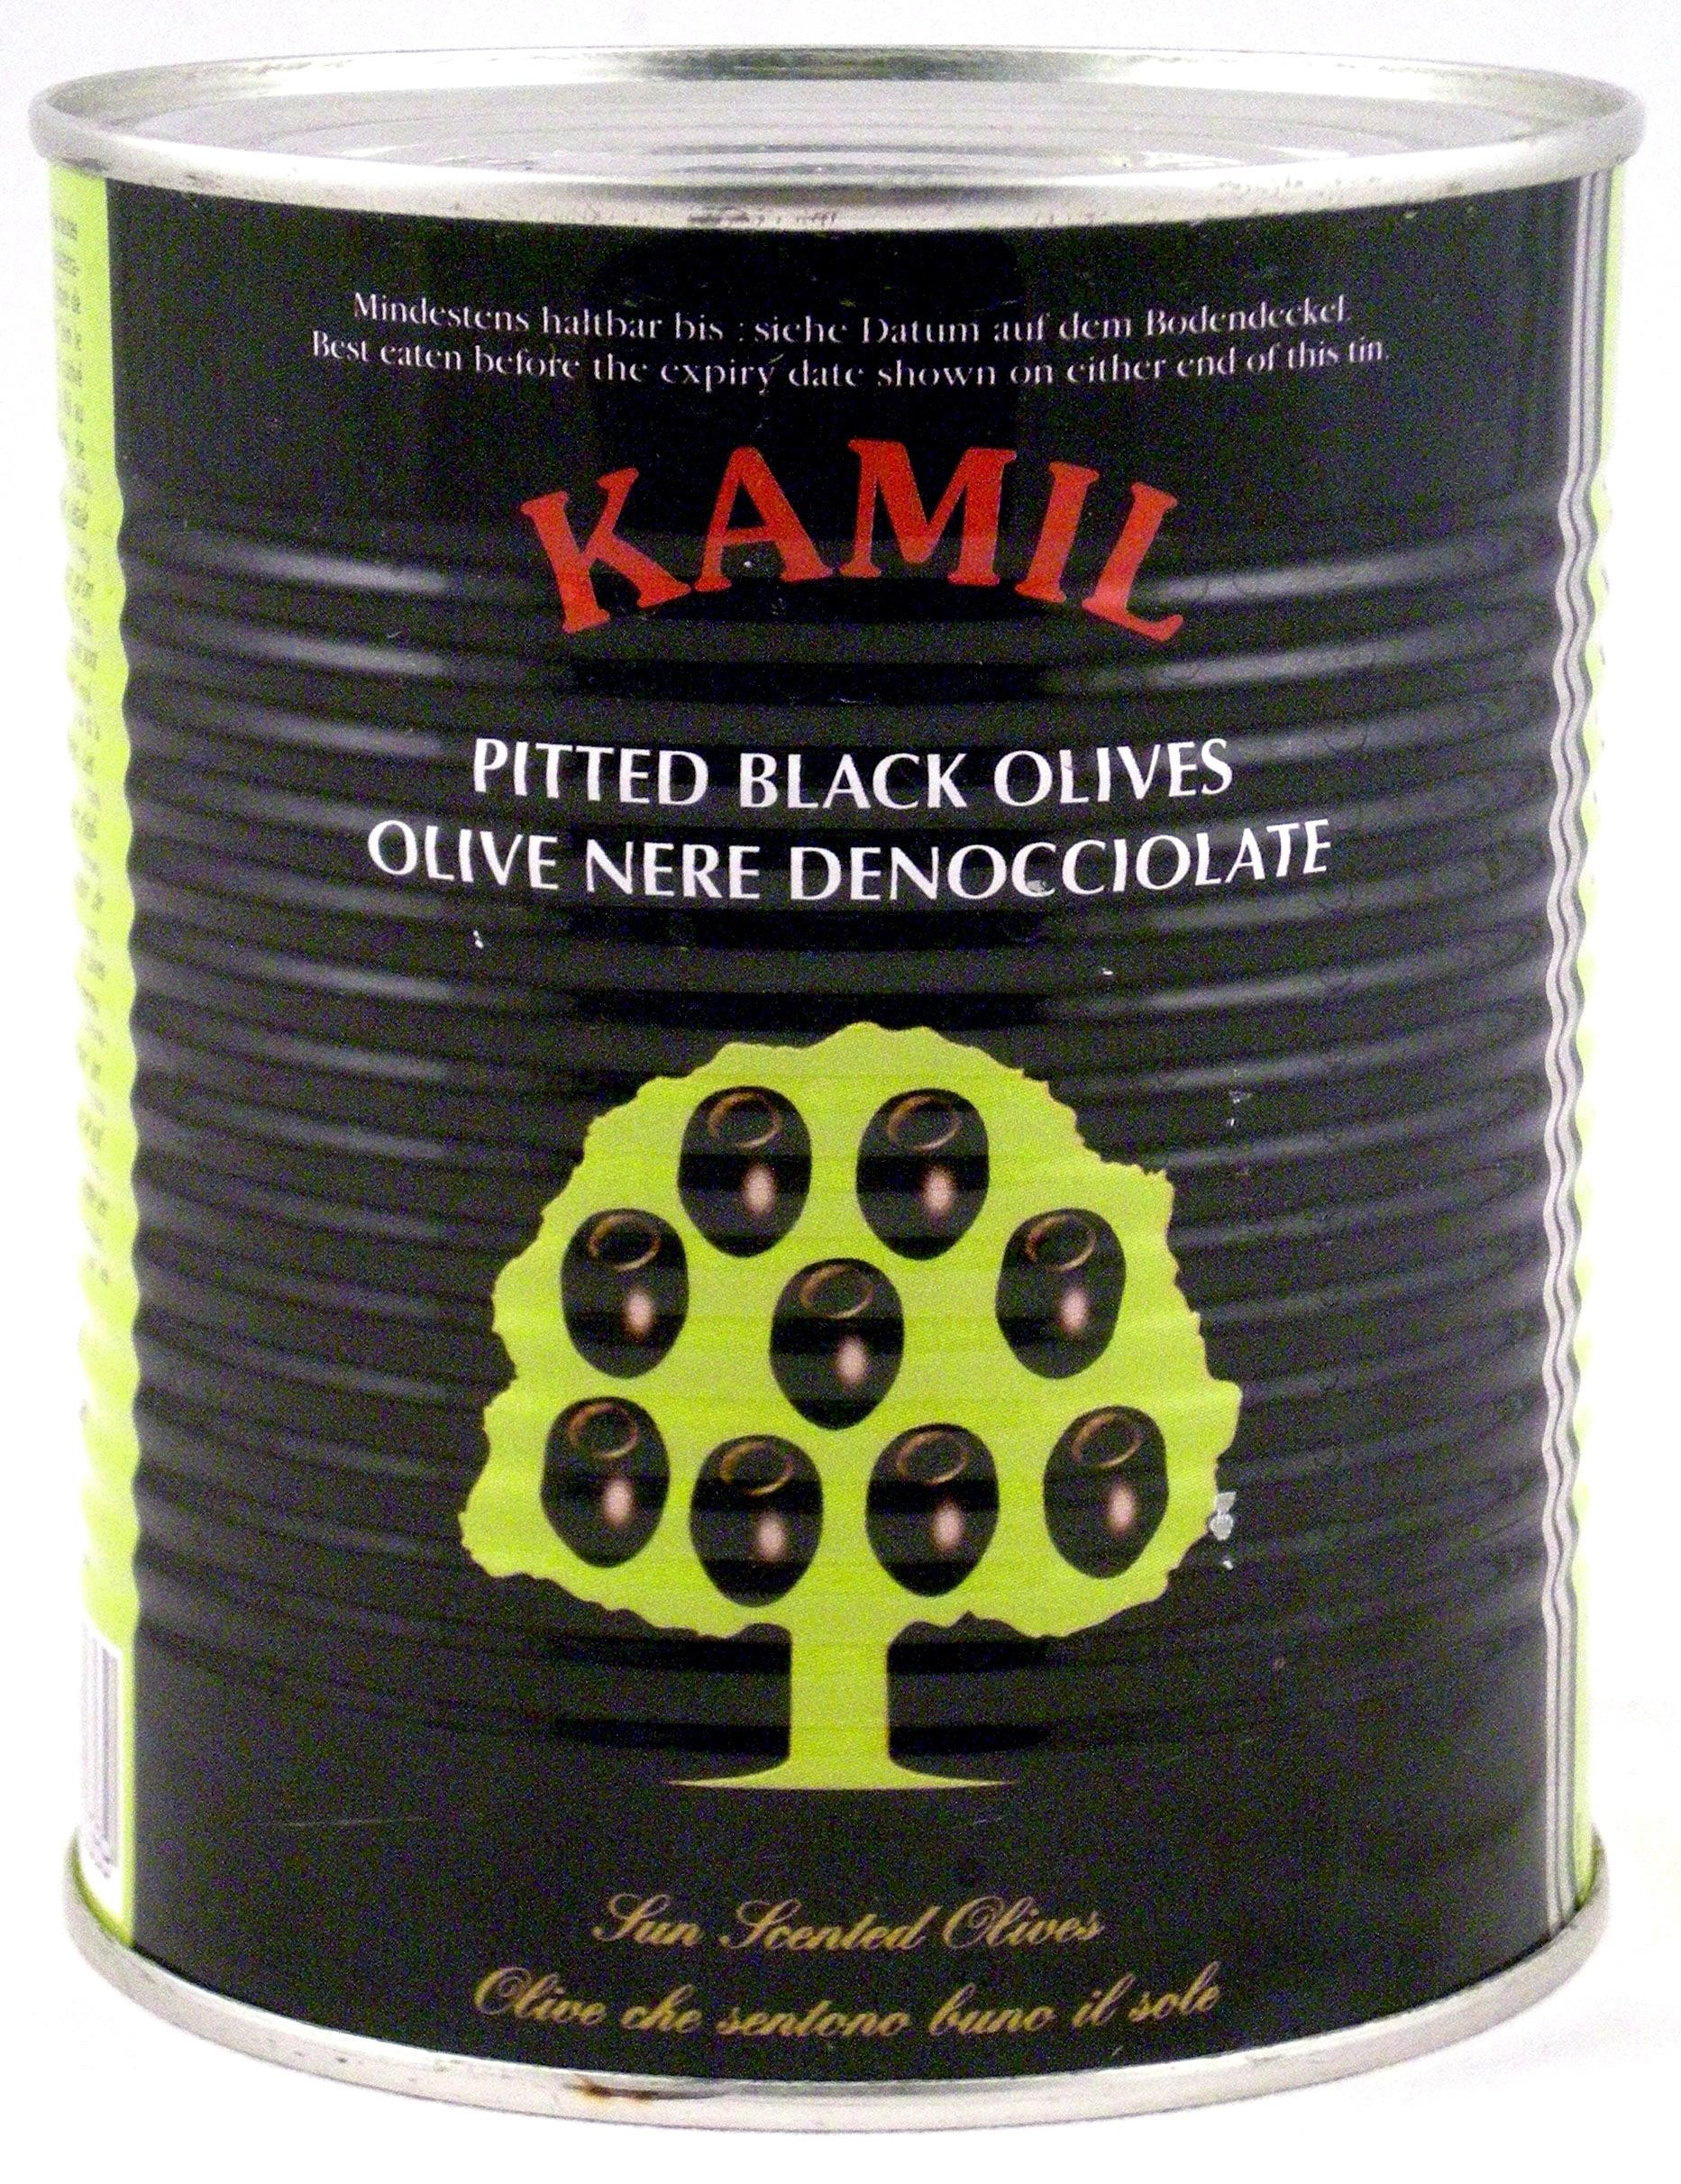 Pitted black olives in brine 1Lbs 30/33 canned